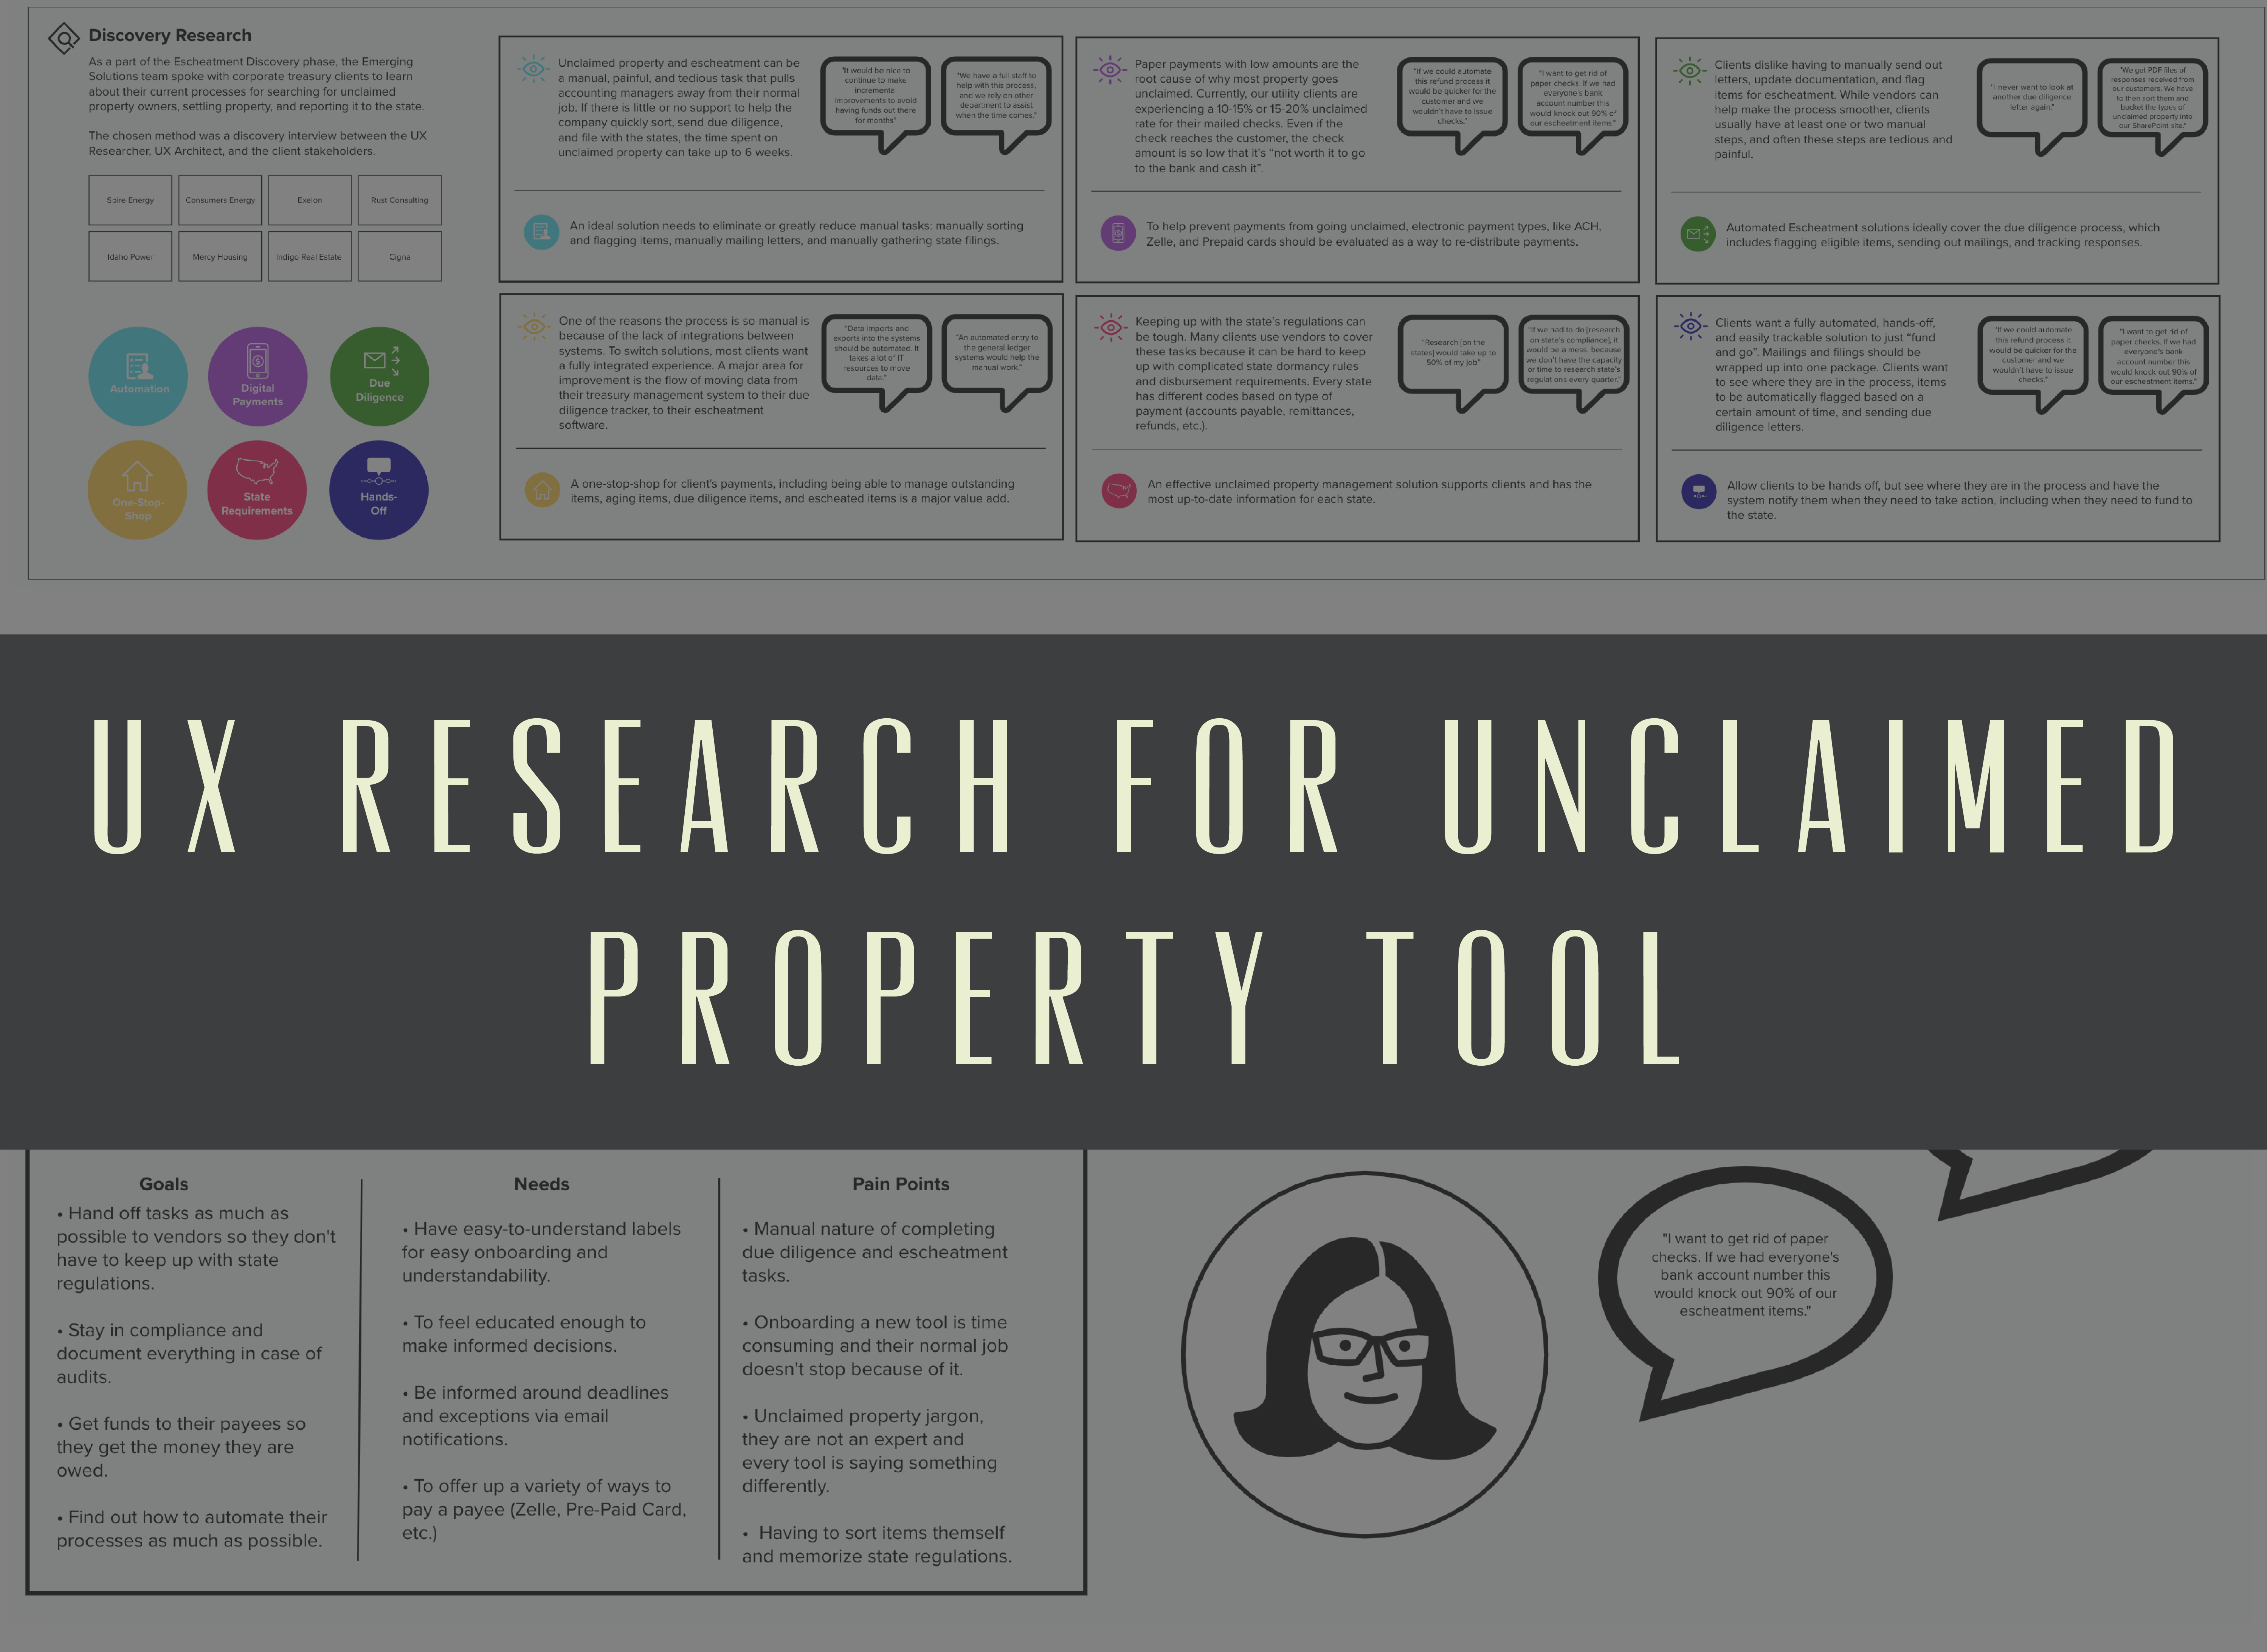 UX Research for Unclaimed Property Tool